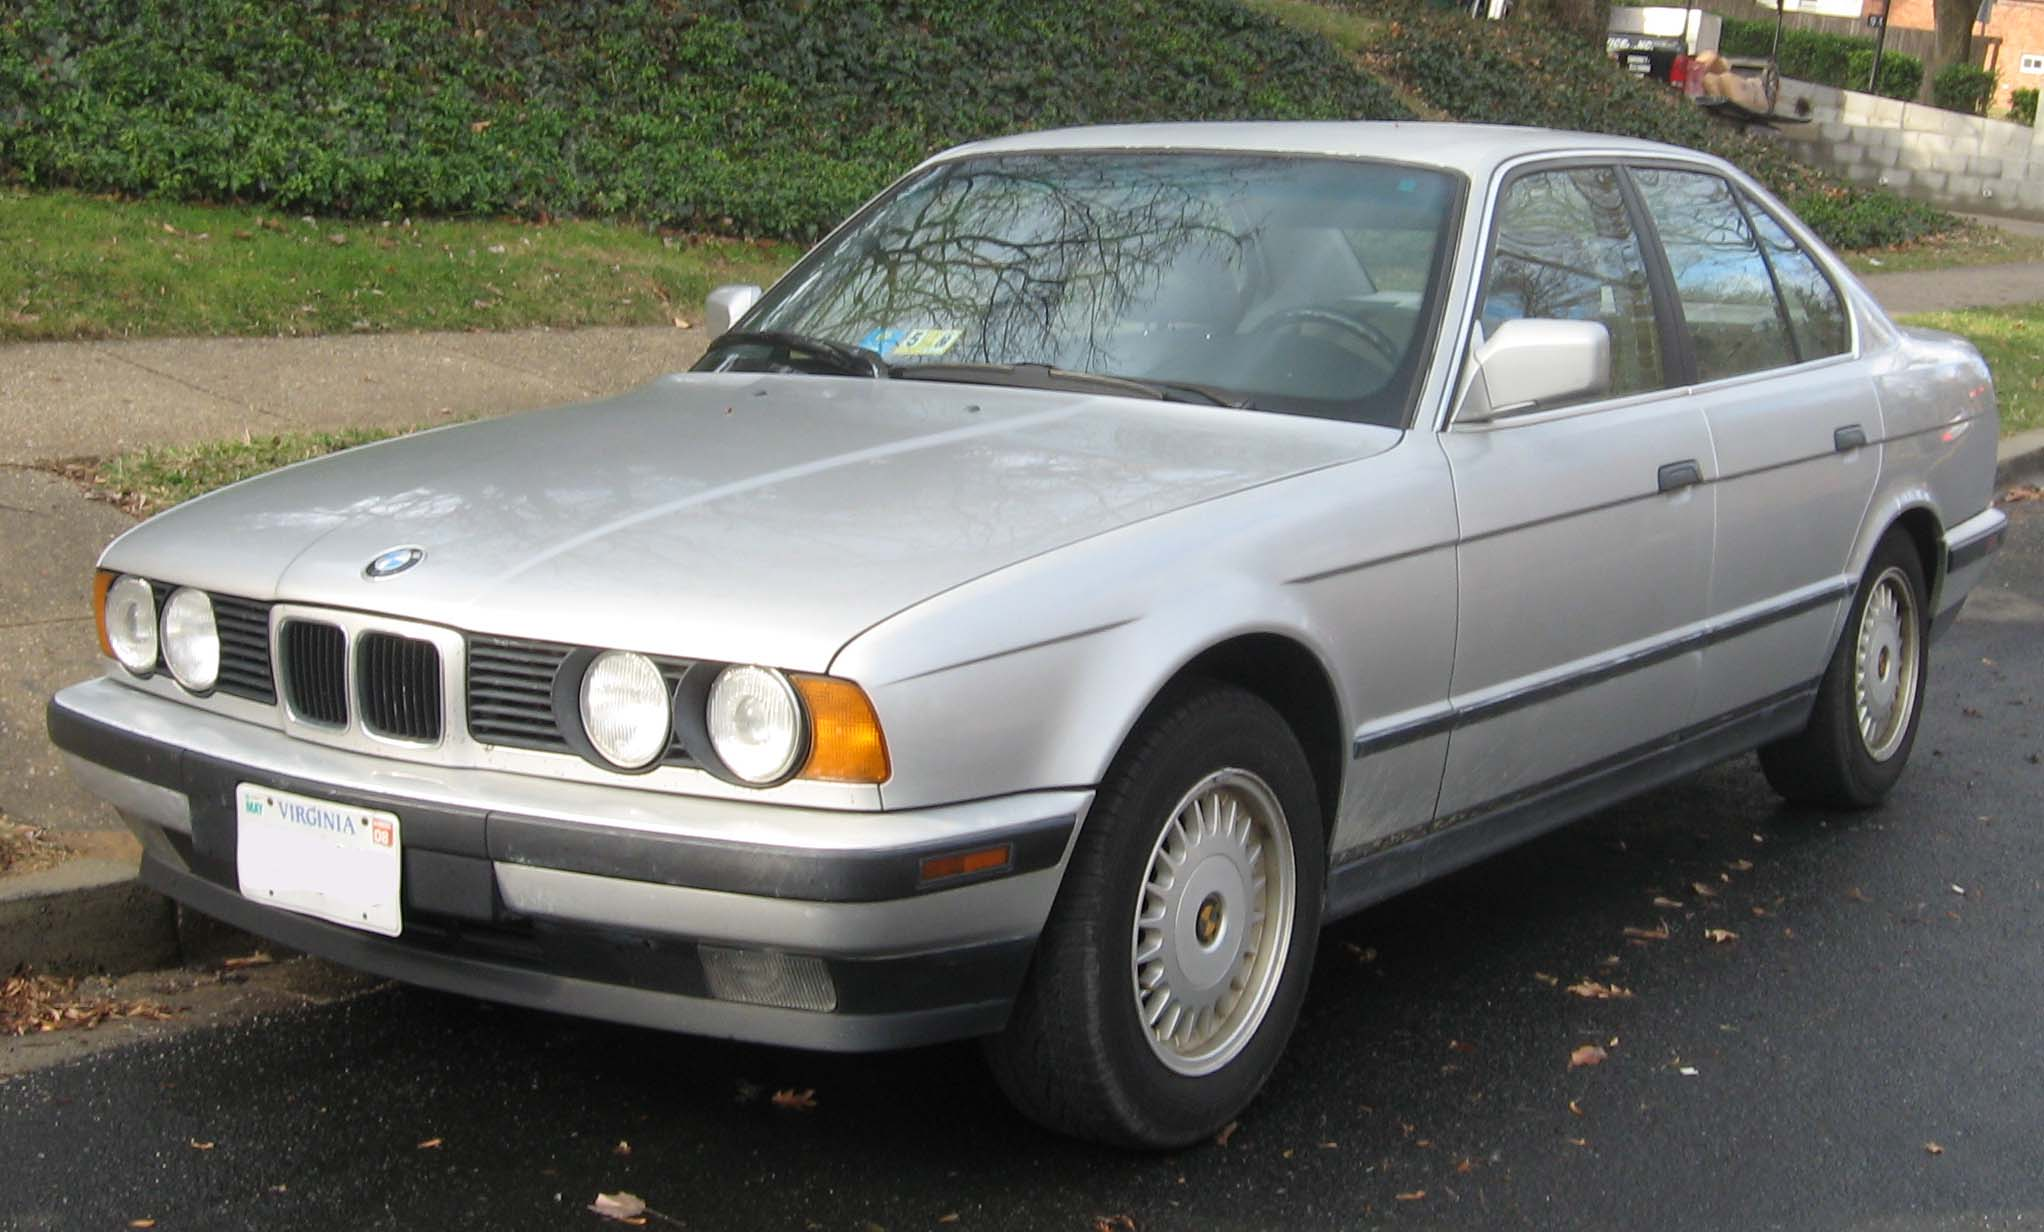 BMW 5 series 530i 1988 photo - 10